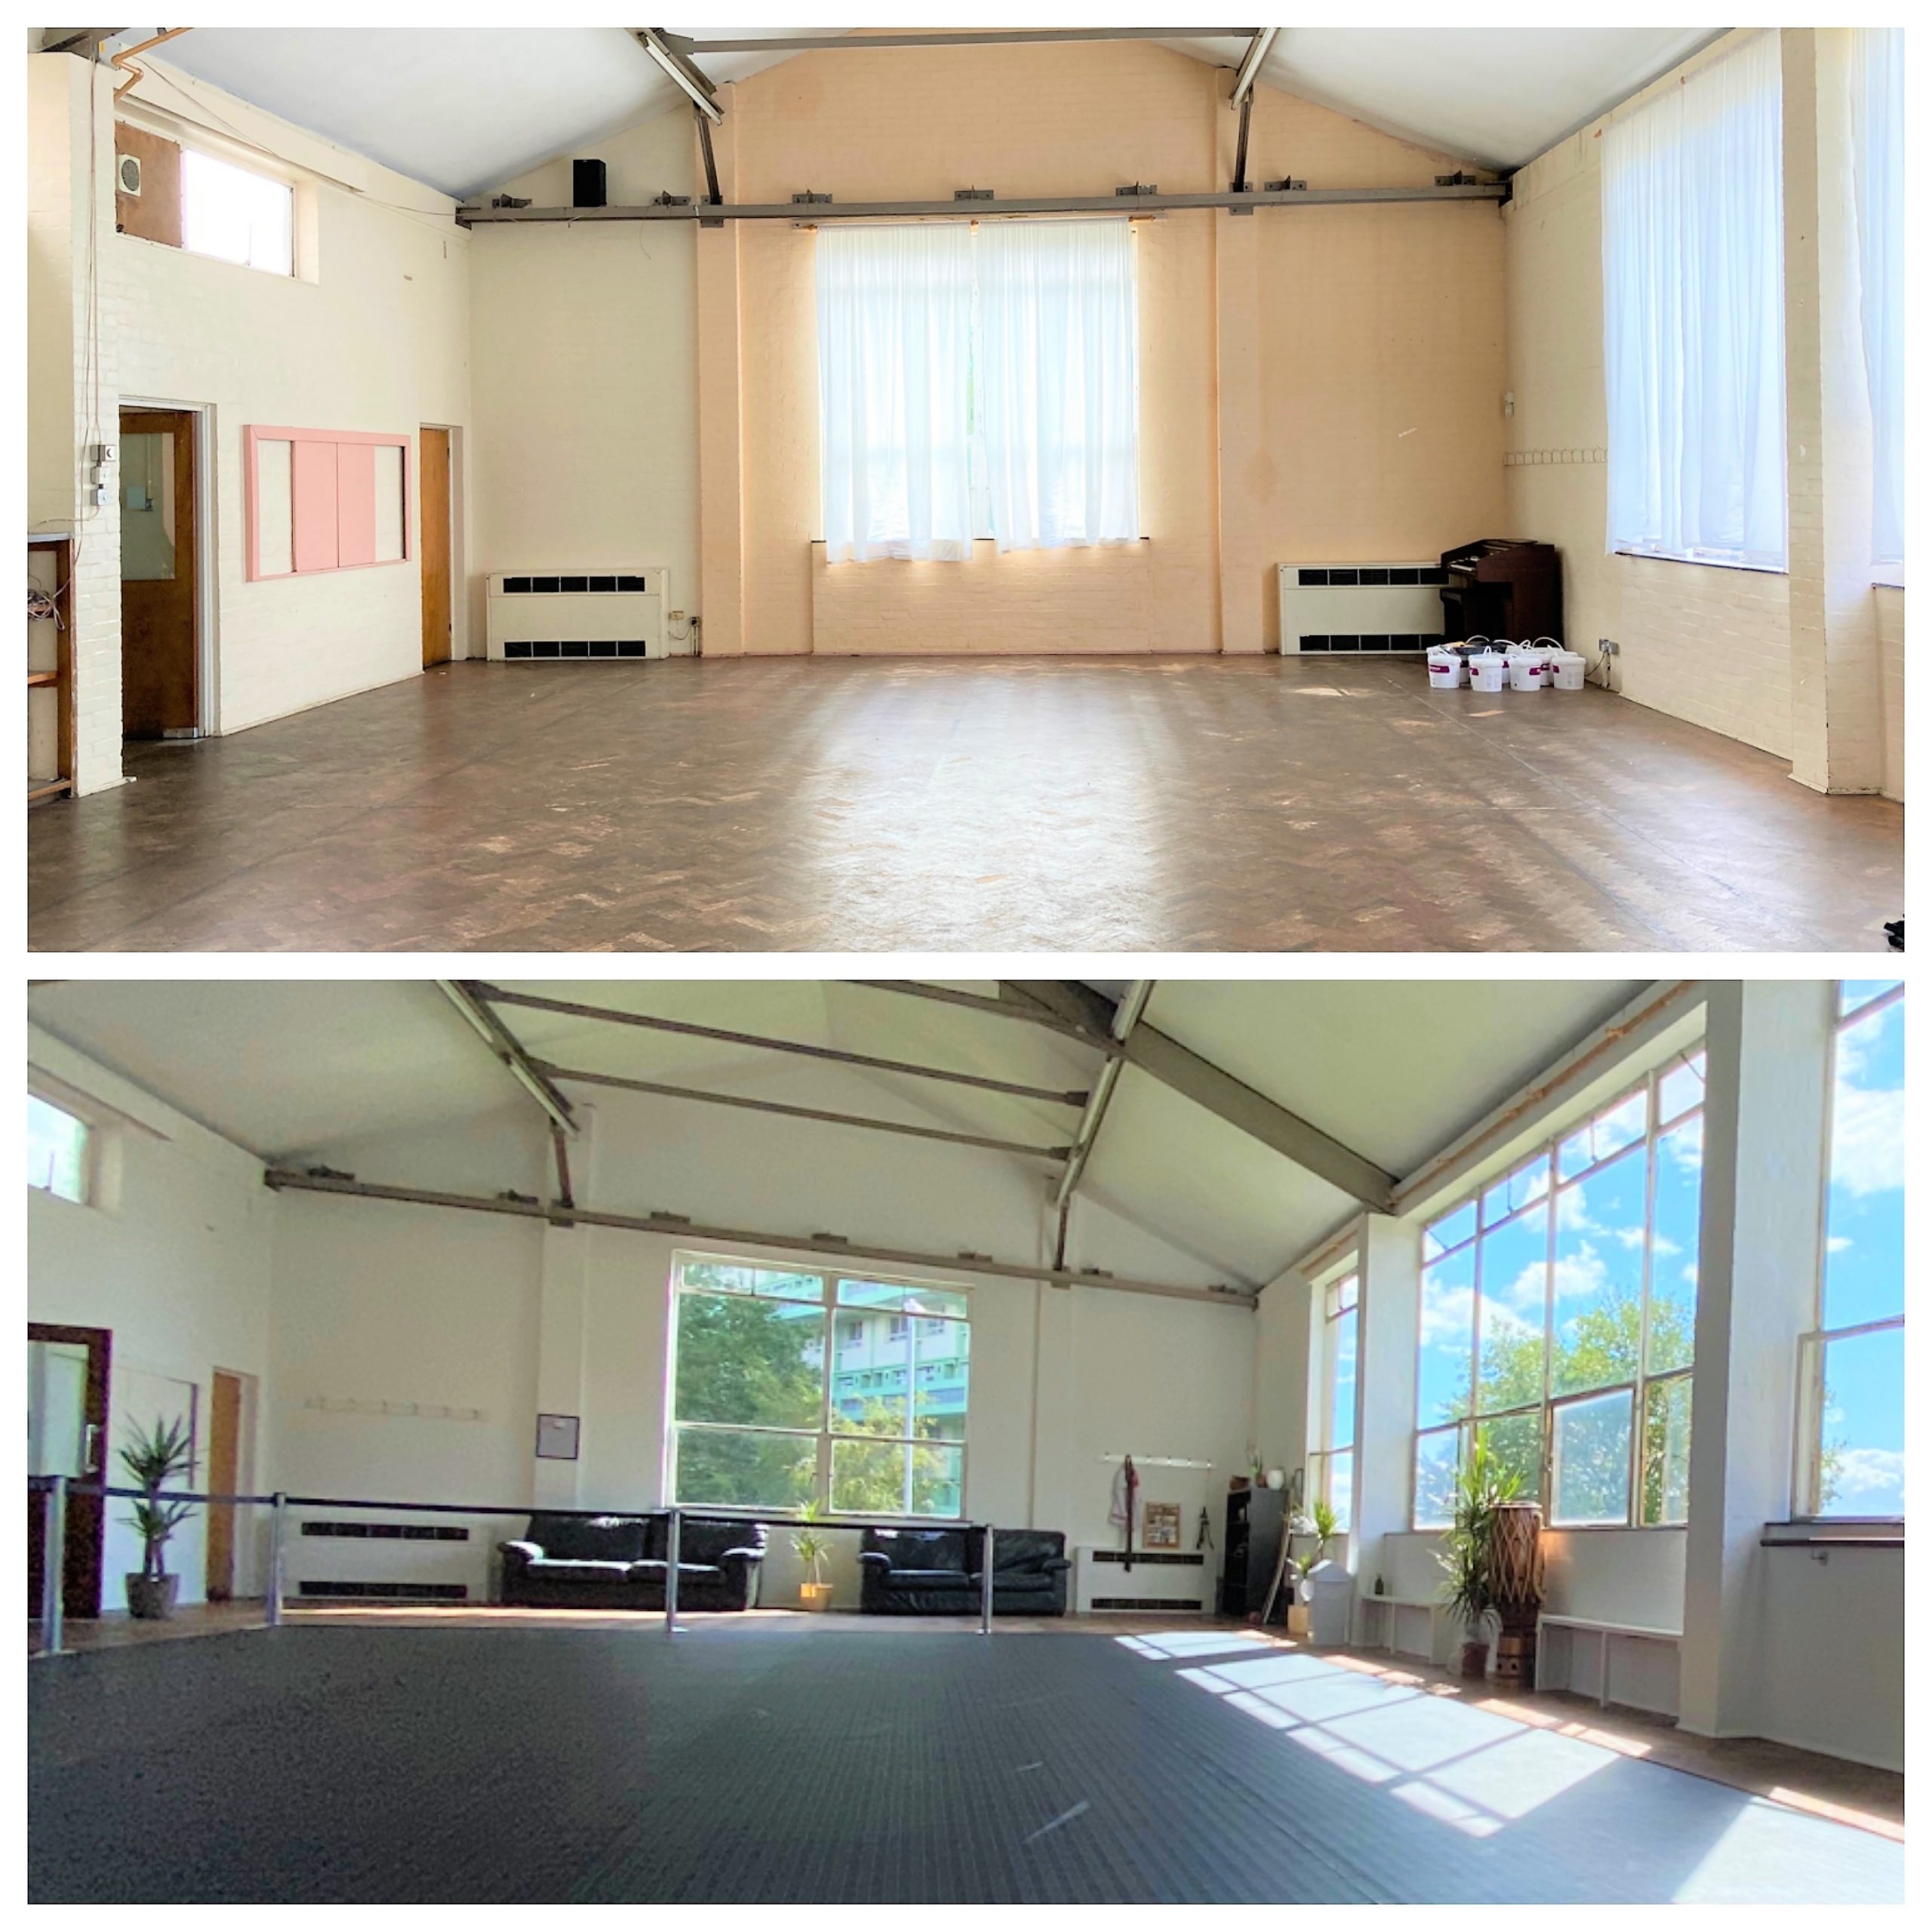 Before and after redecoration of the exercise venue, Art of Movement in Bristol, using our cheap and environmentally friendly ReColour emulsion paint.